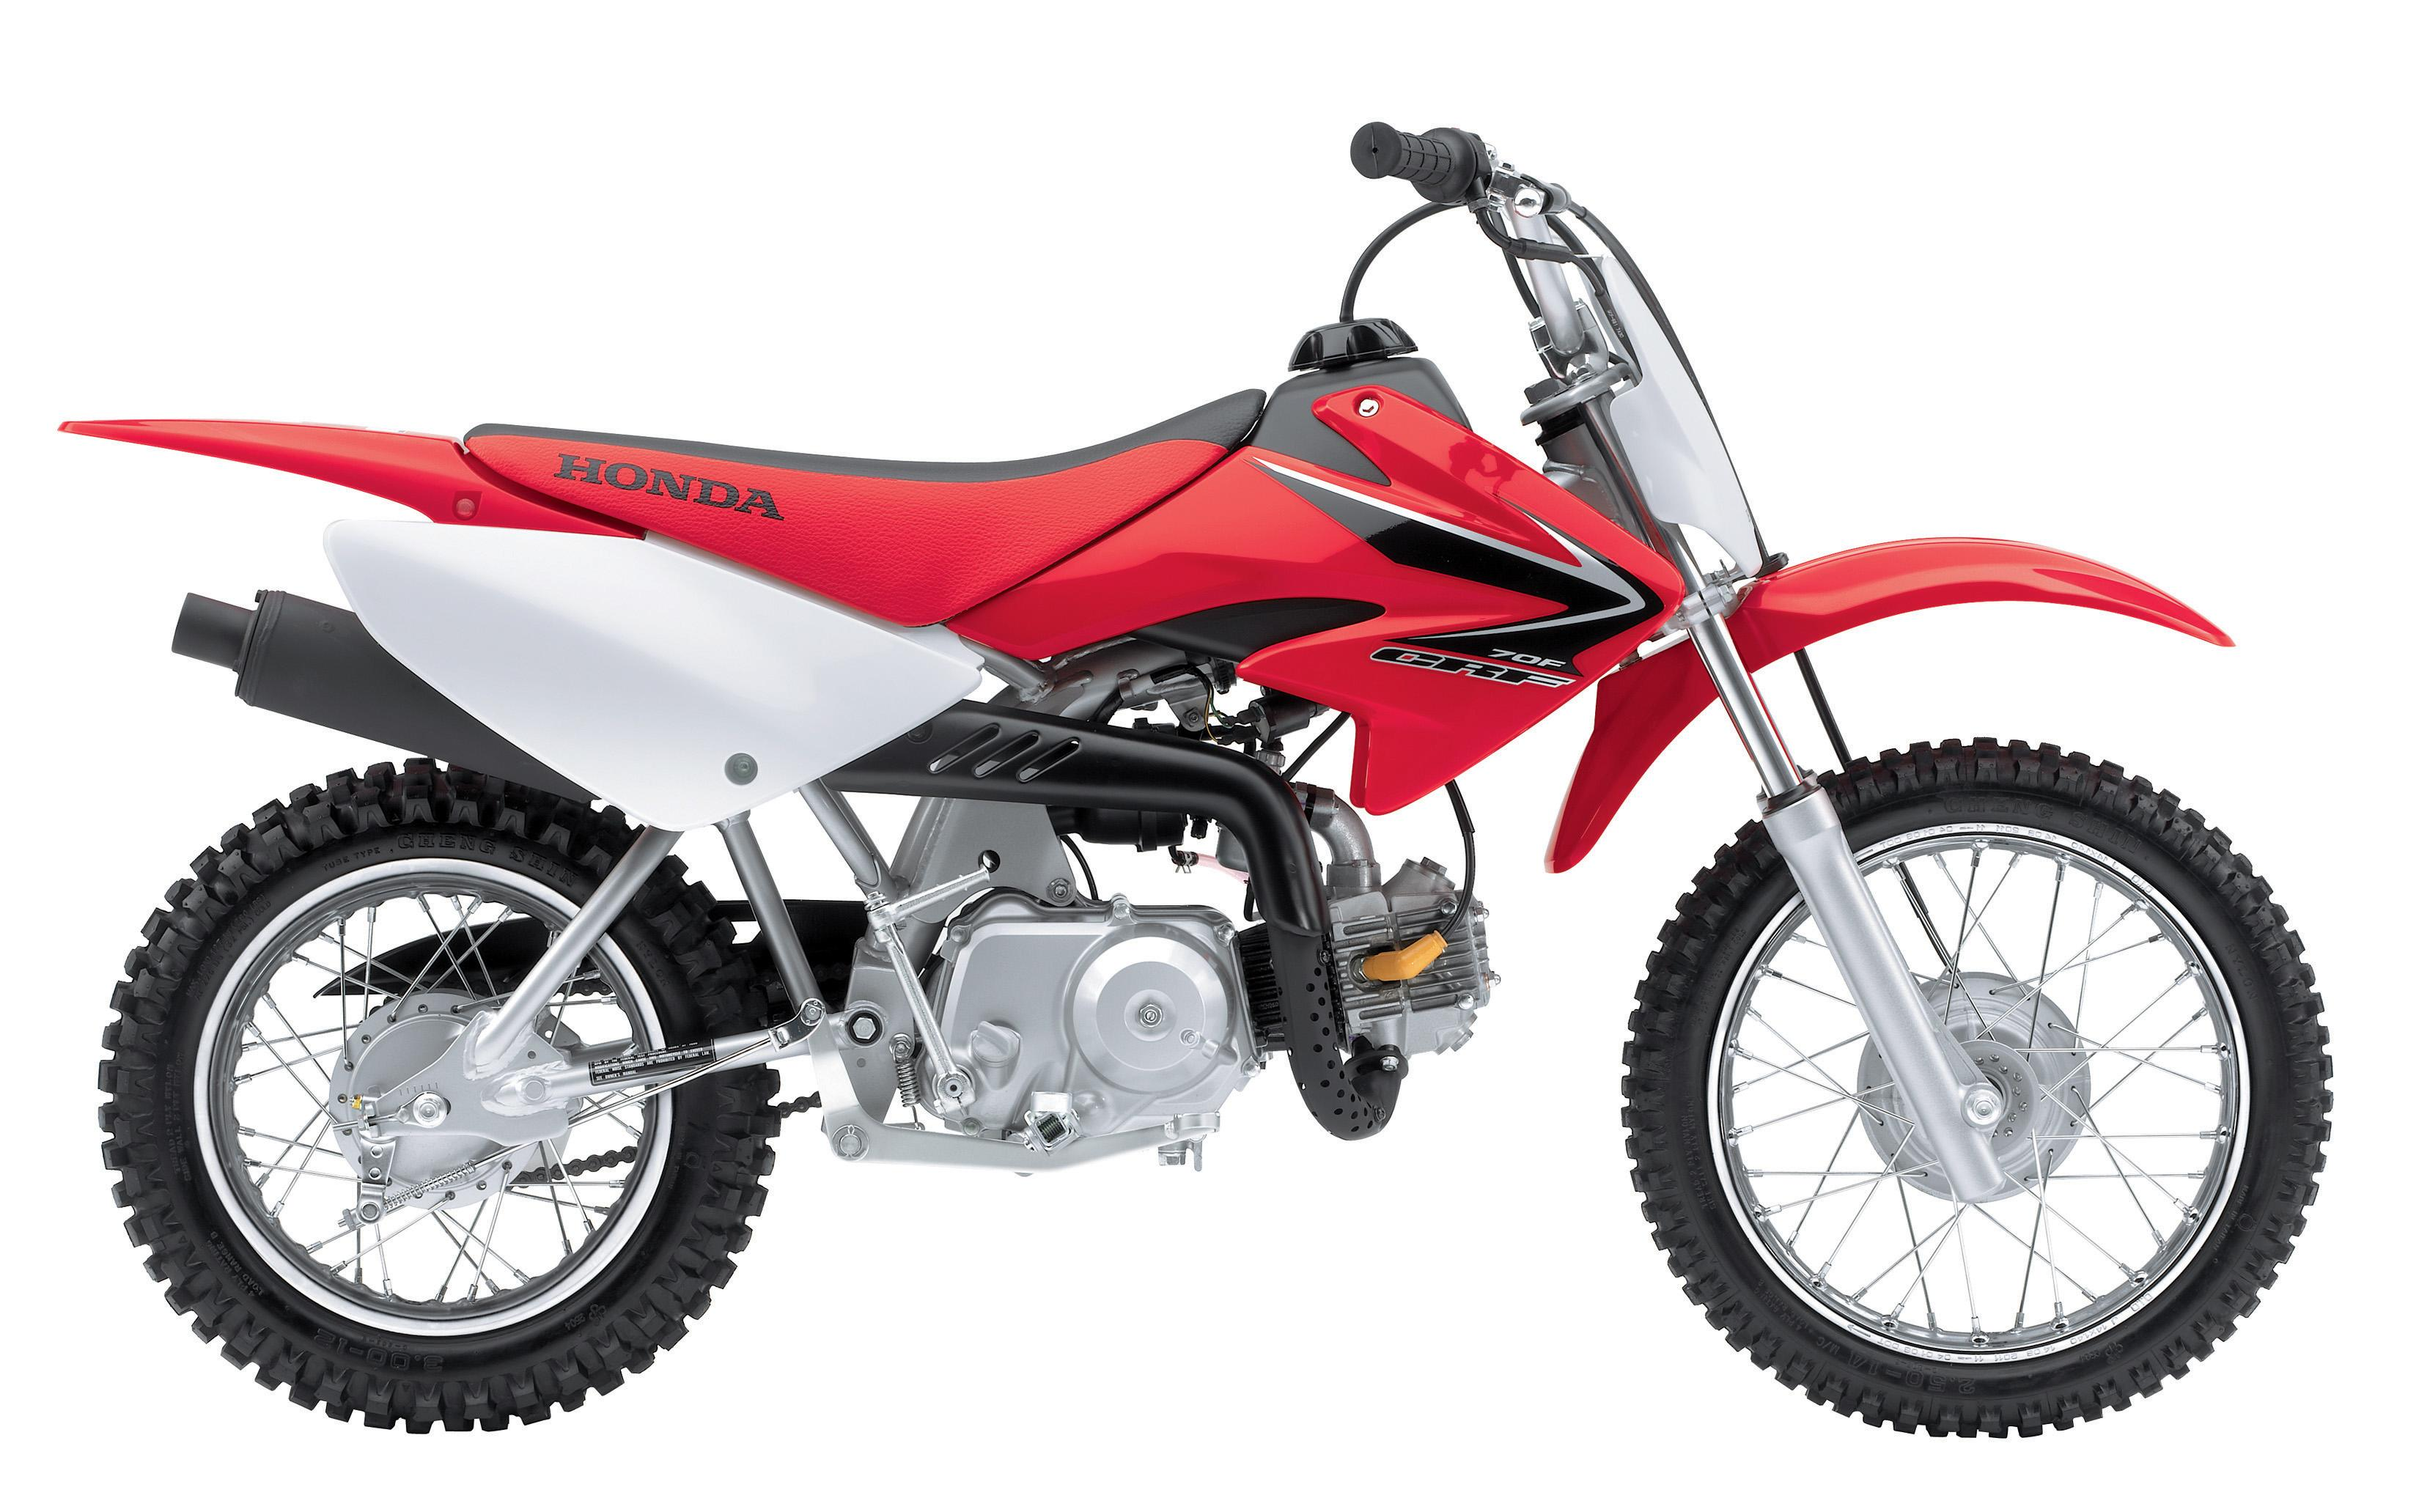 2008 Honda CRF70F Review - Top Speed. »